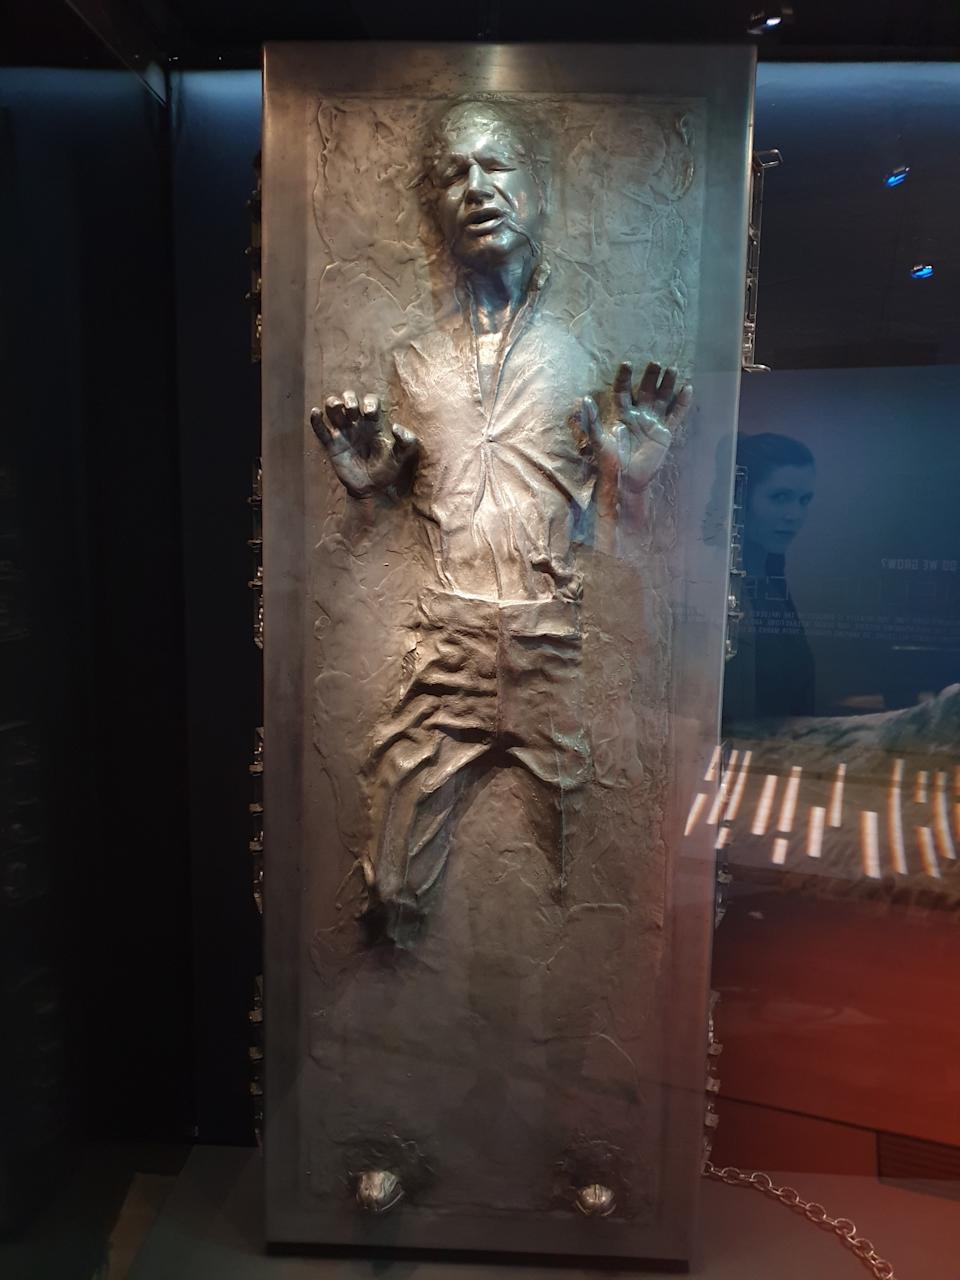 Prop of Han Solo in carbonite from Star Wars: The Empire Strikes Back at the Star Wars Identities exhibition in Singapore at the Artscience Museum. (Photo: Teng Yong Ping)